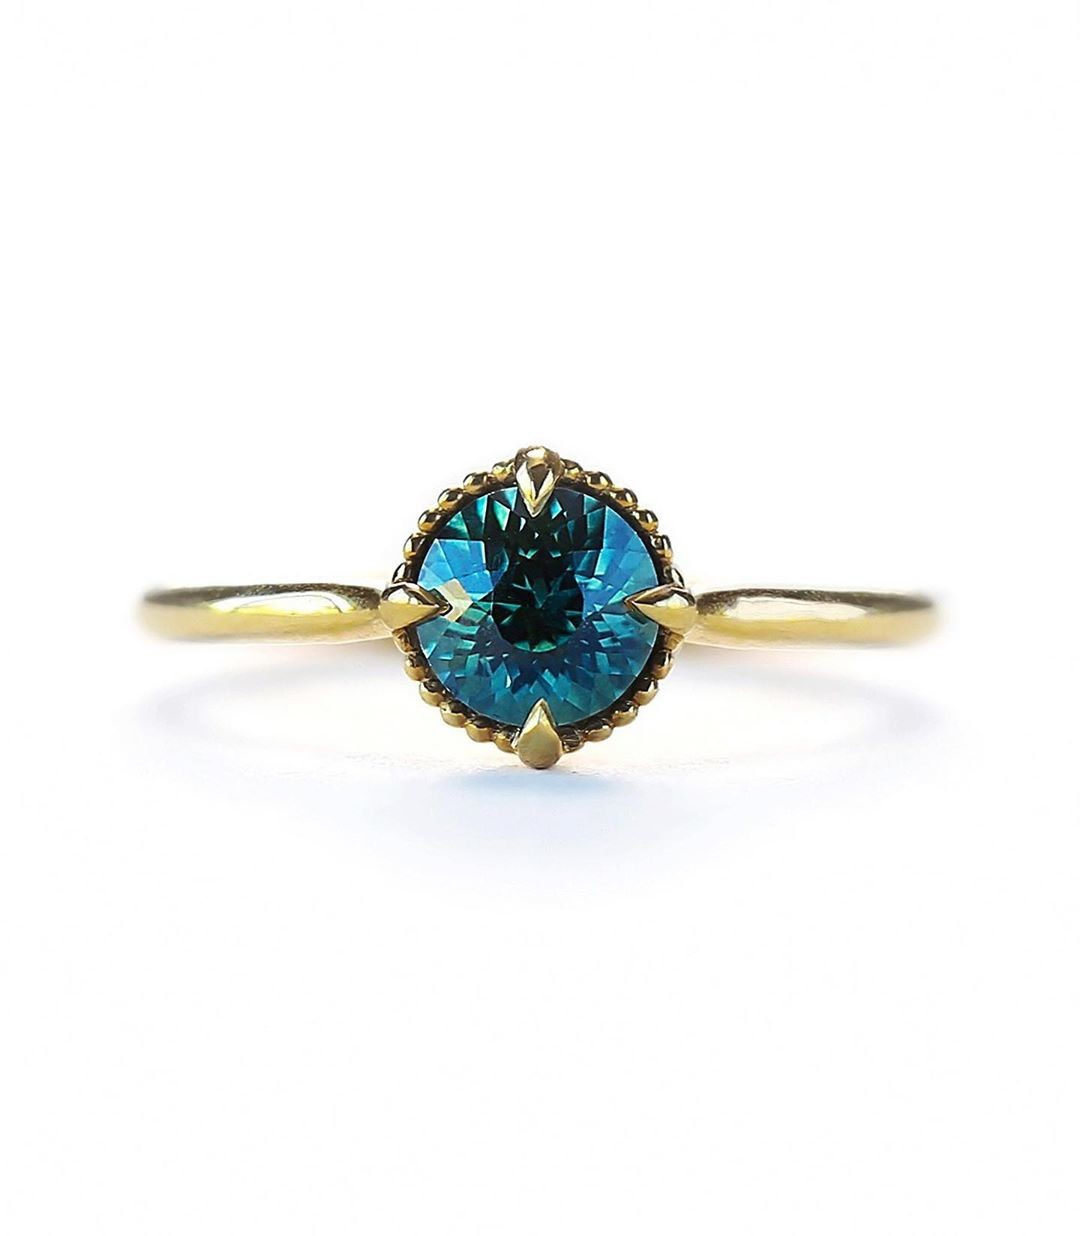 What is it about Teal natural Montana Sapphires that just takes our breath away?!? 💙✨💫 Link in Bio